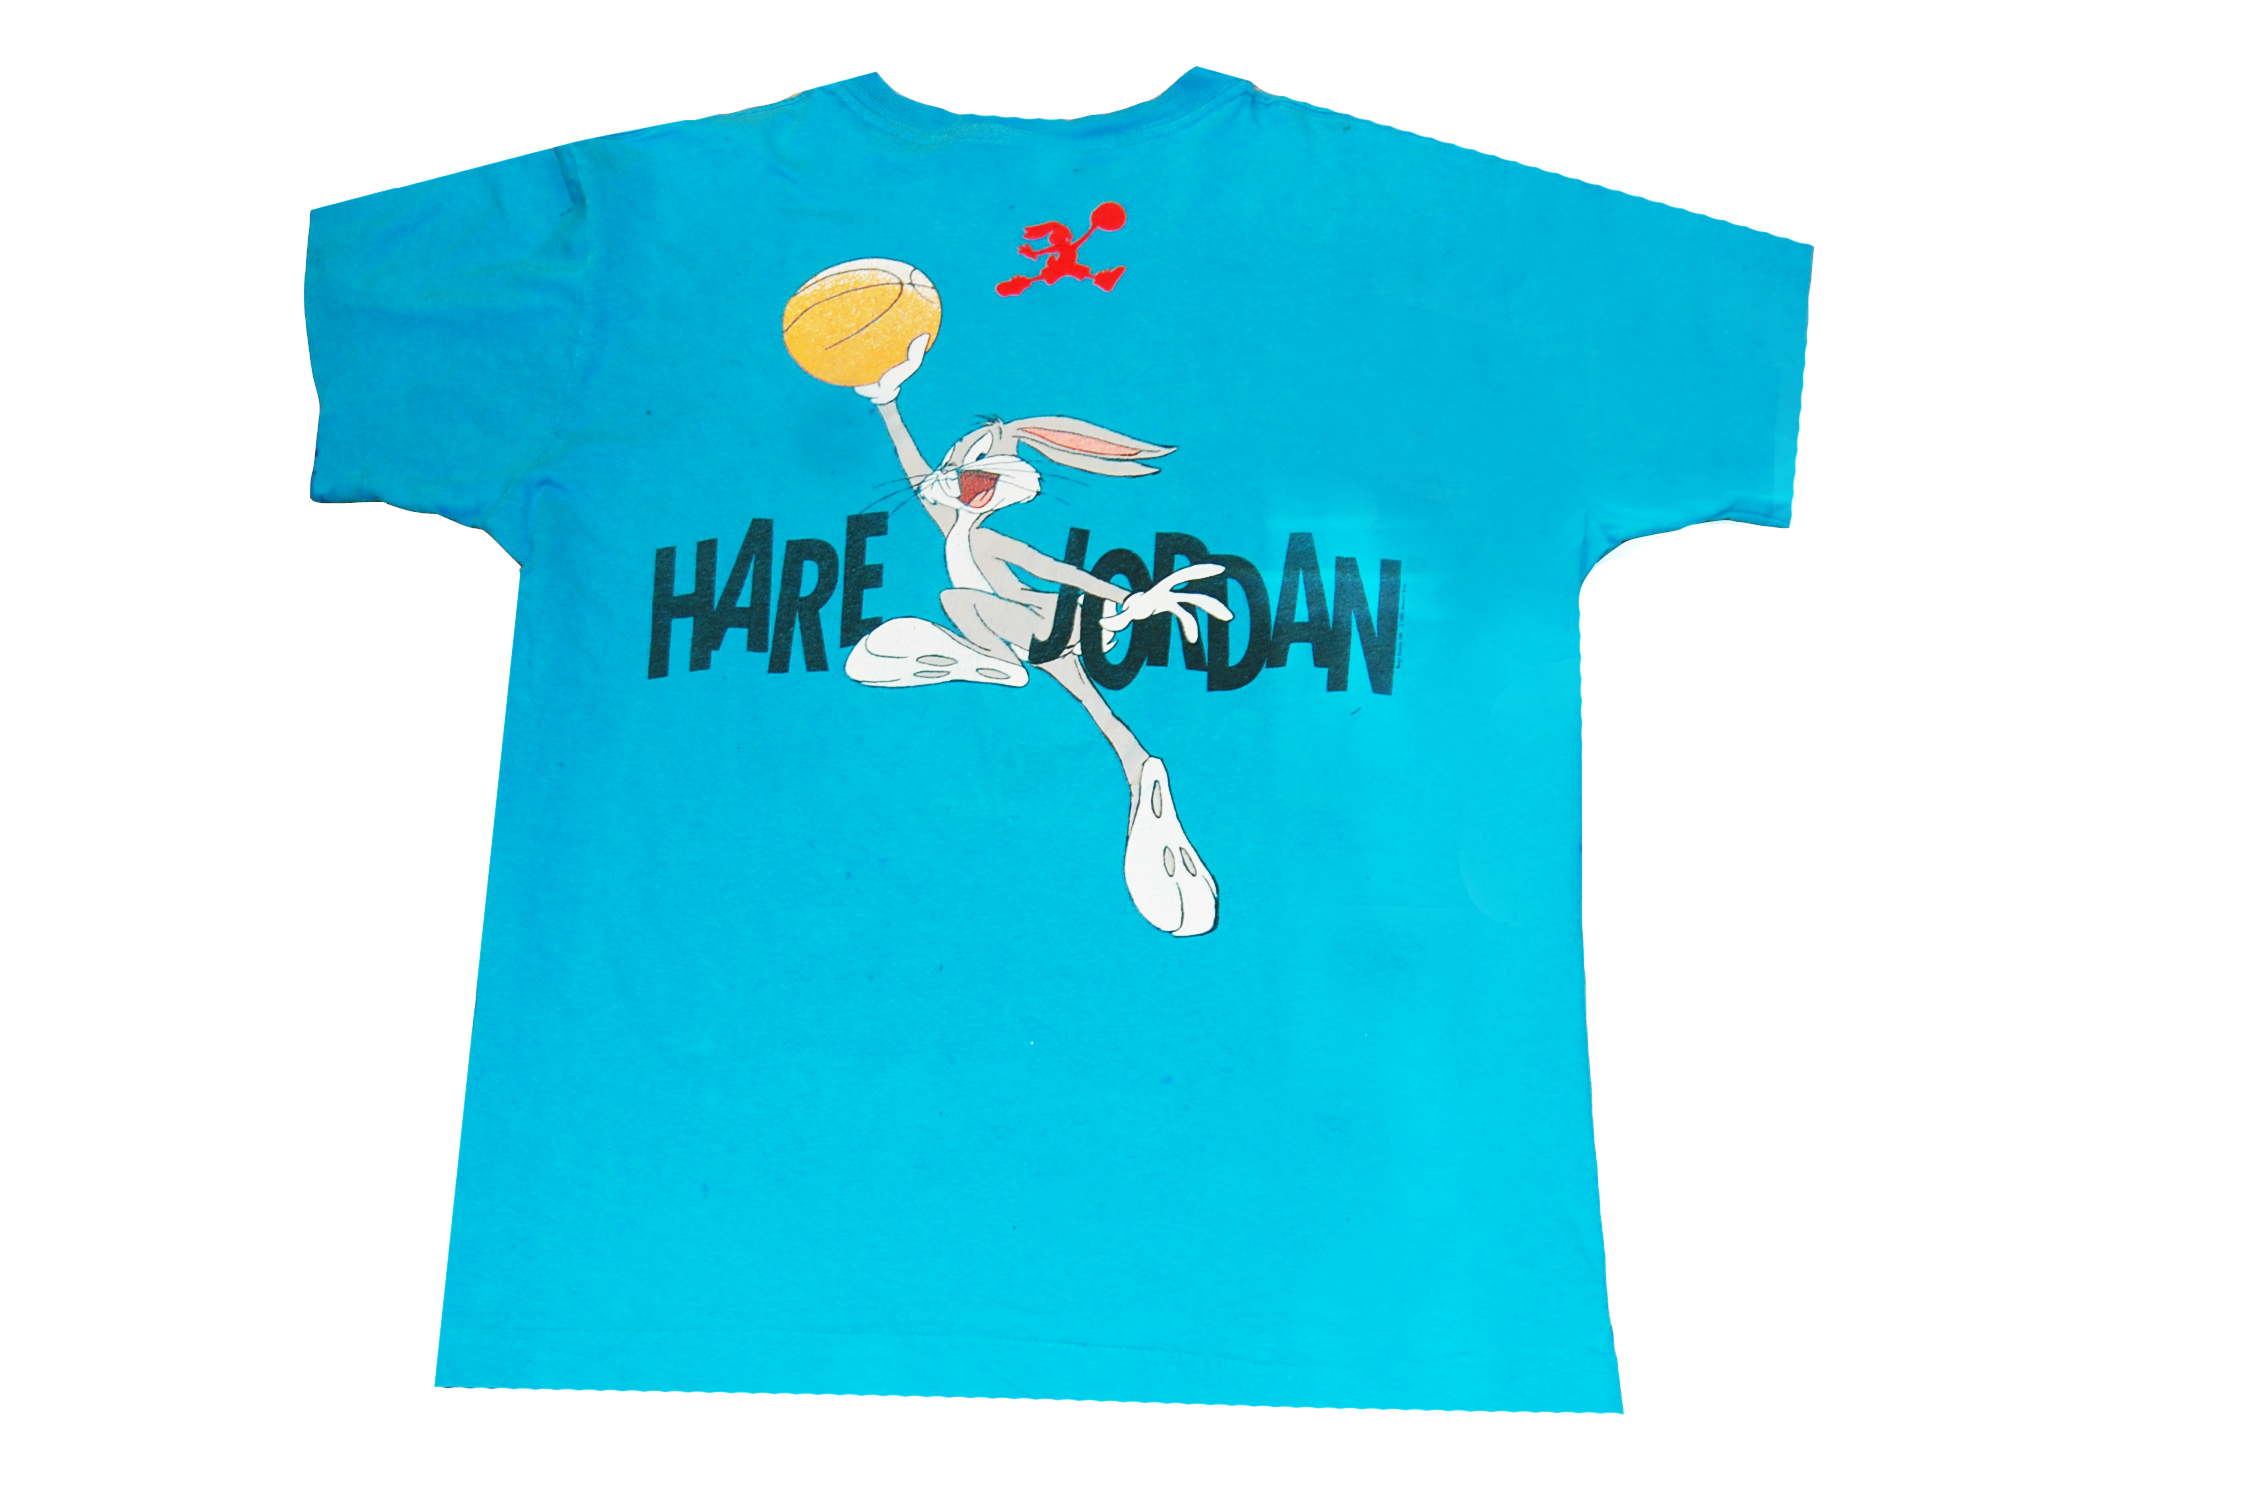 Archival Nike Hare Jordan Tee Size  Womens Large 0be754a919